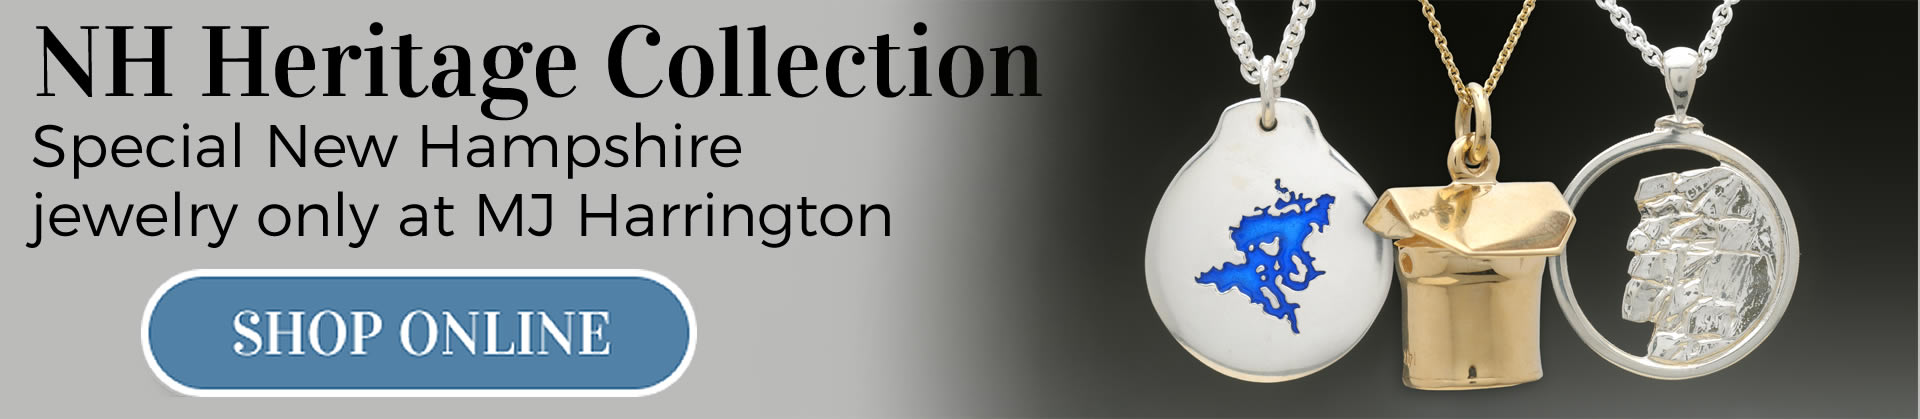 MJ Harrington Jewelers NH Heritage Collection Shop Online mobile